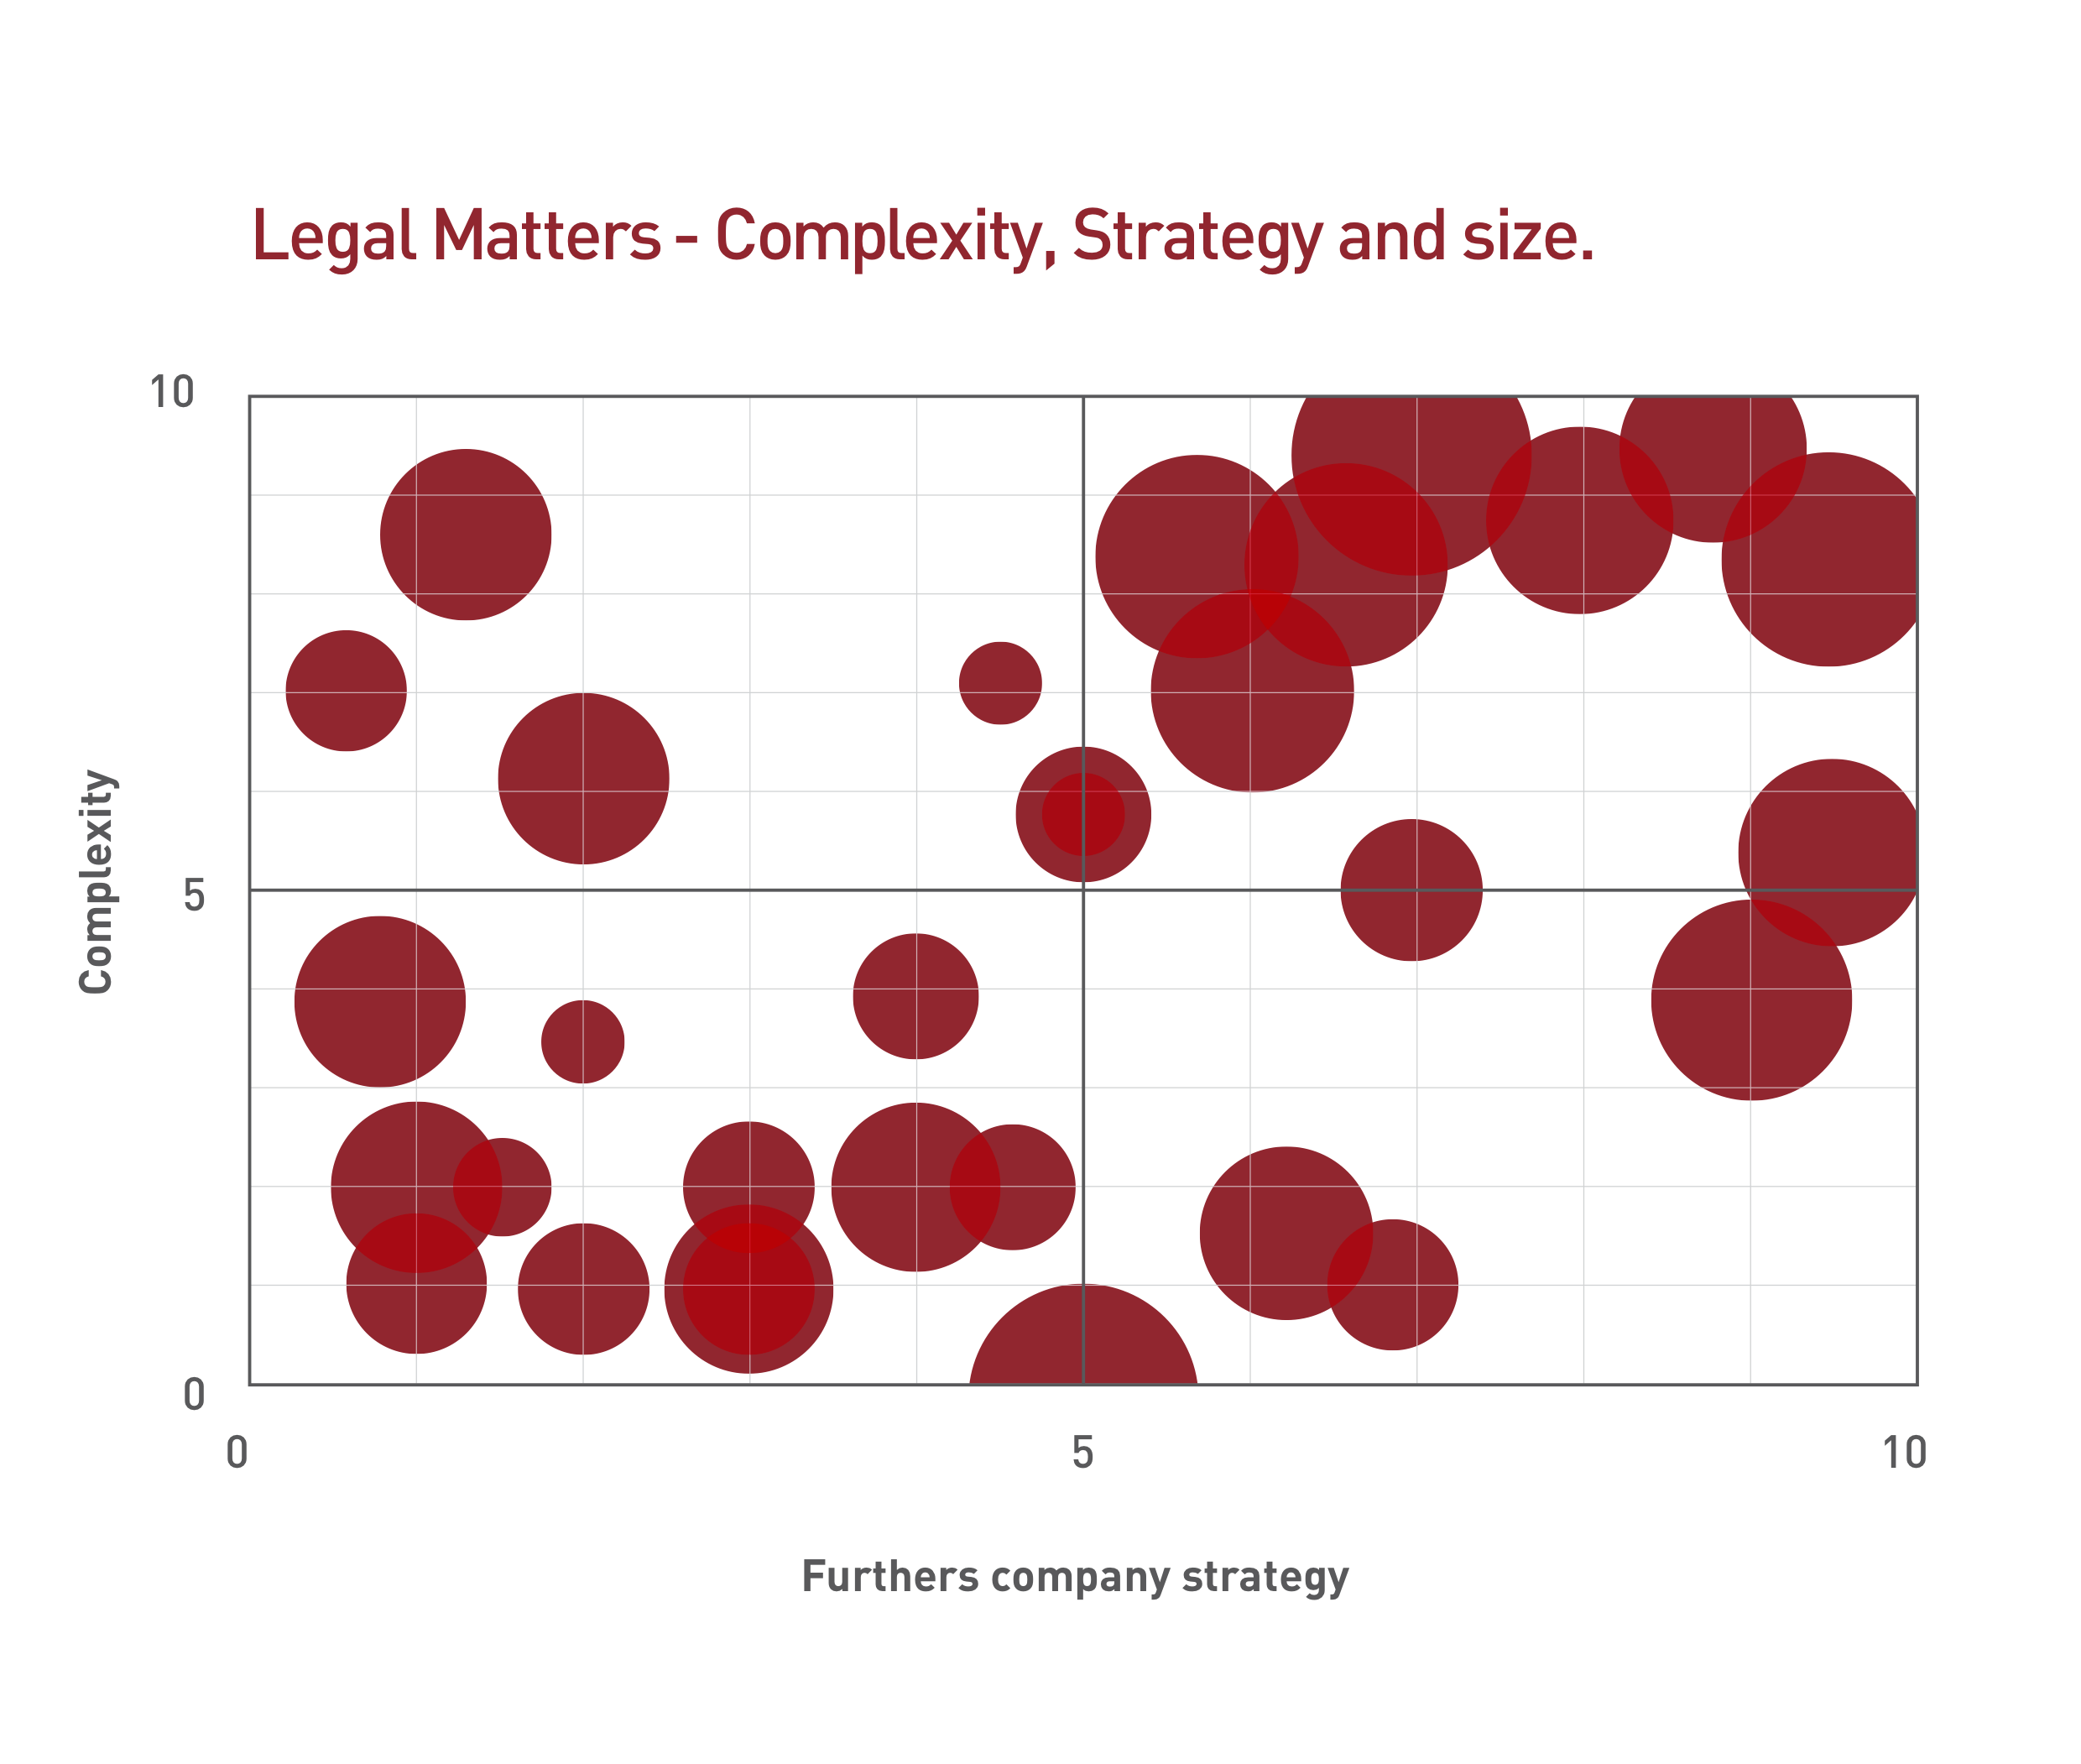 XAKIA_Blog Graphic_Complex, Strat, Size_01.png